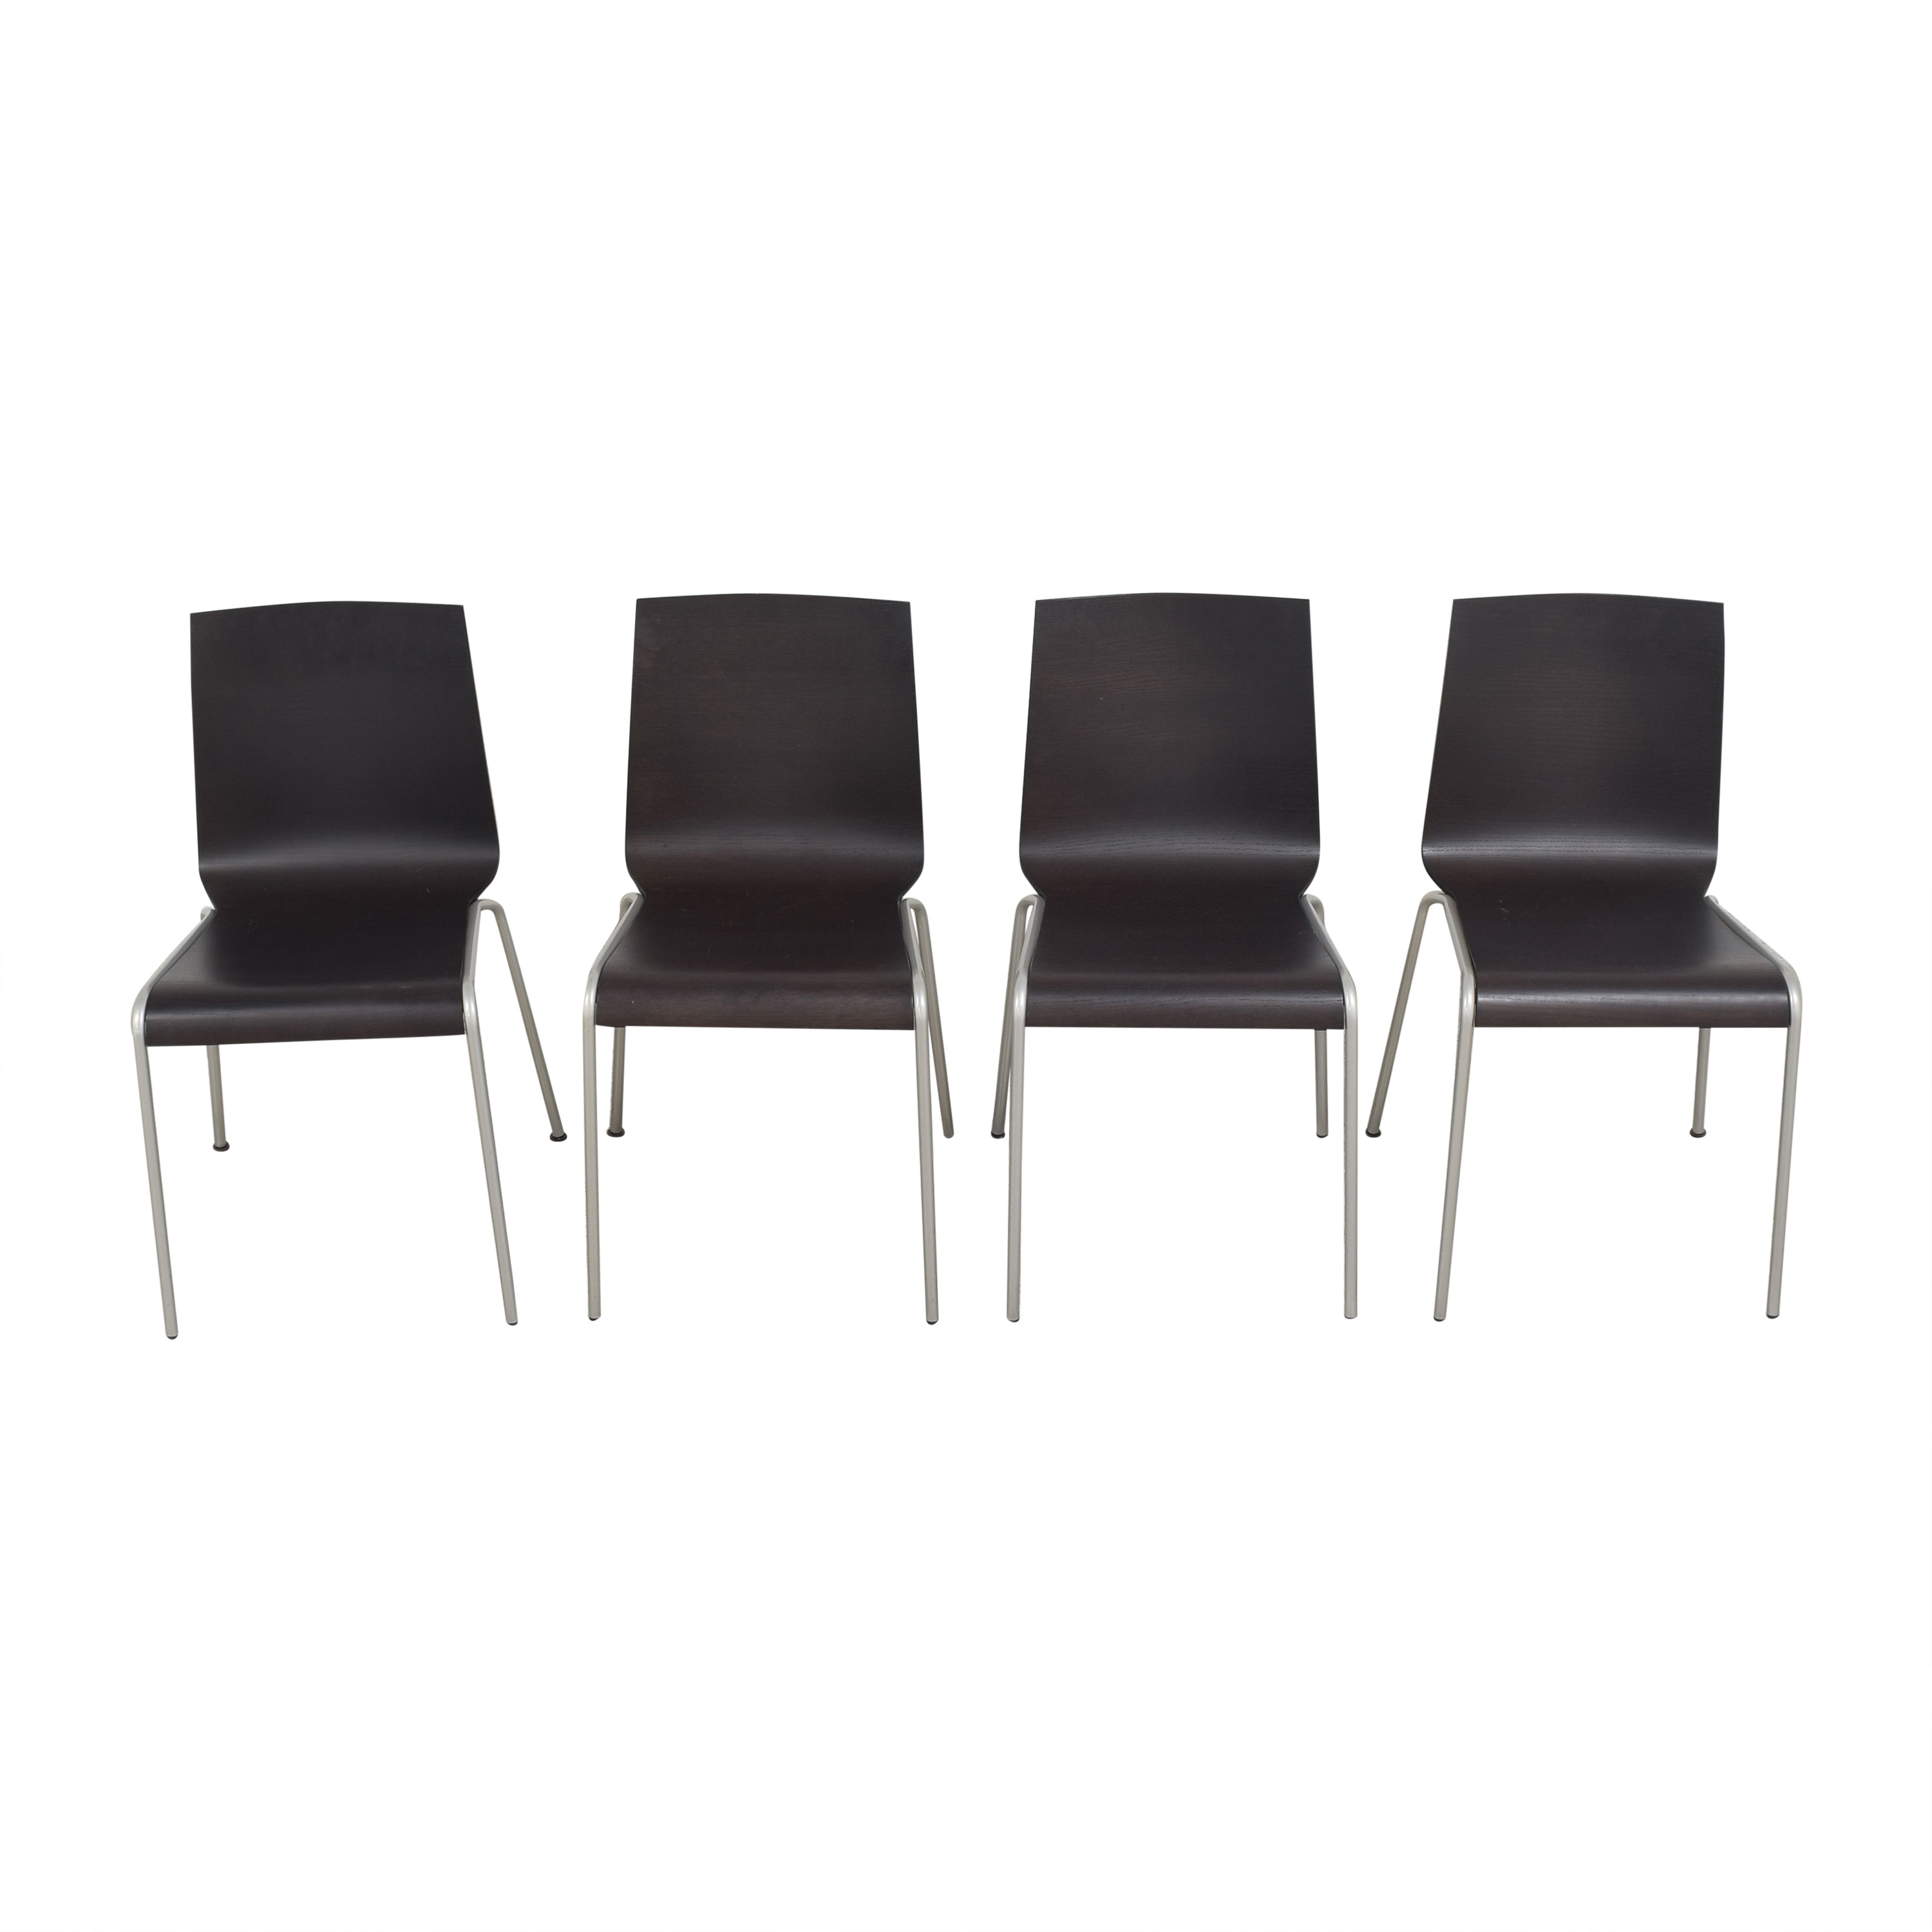 Calligaris Calligaris Dining Chairs dark brown and silver